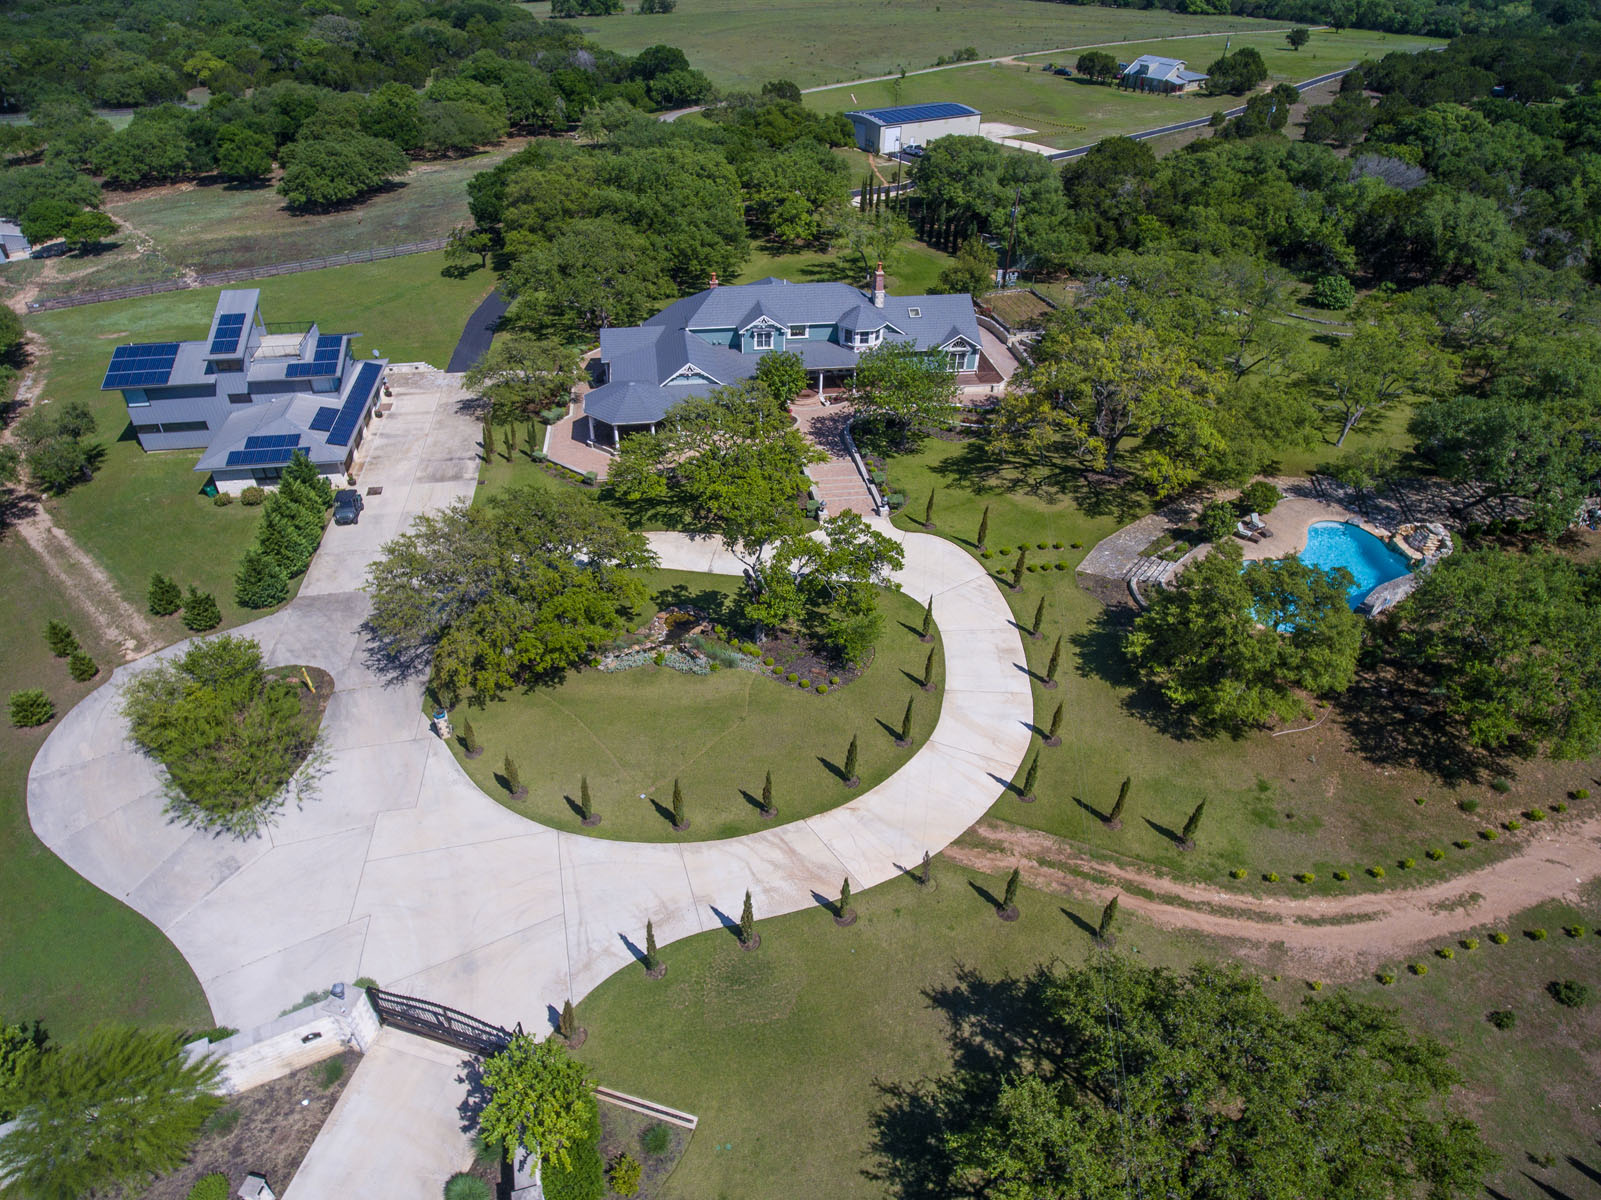 Single Family Home for Sale at The Texas Hill Country Manor 690 Autumn Ln Dripping Springs, Texas 78620 United States